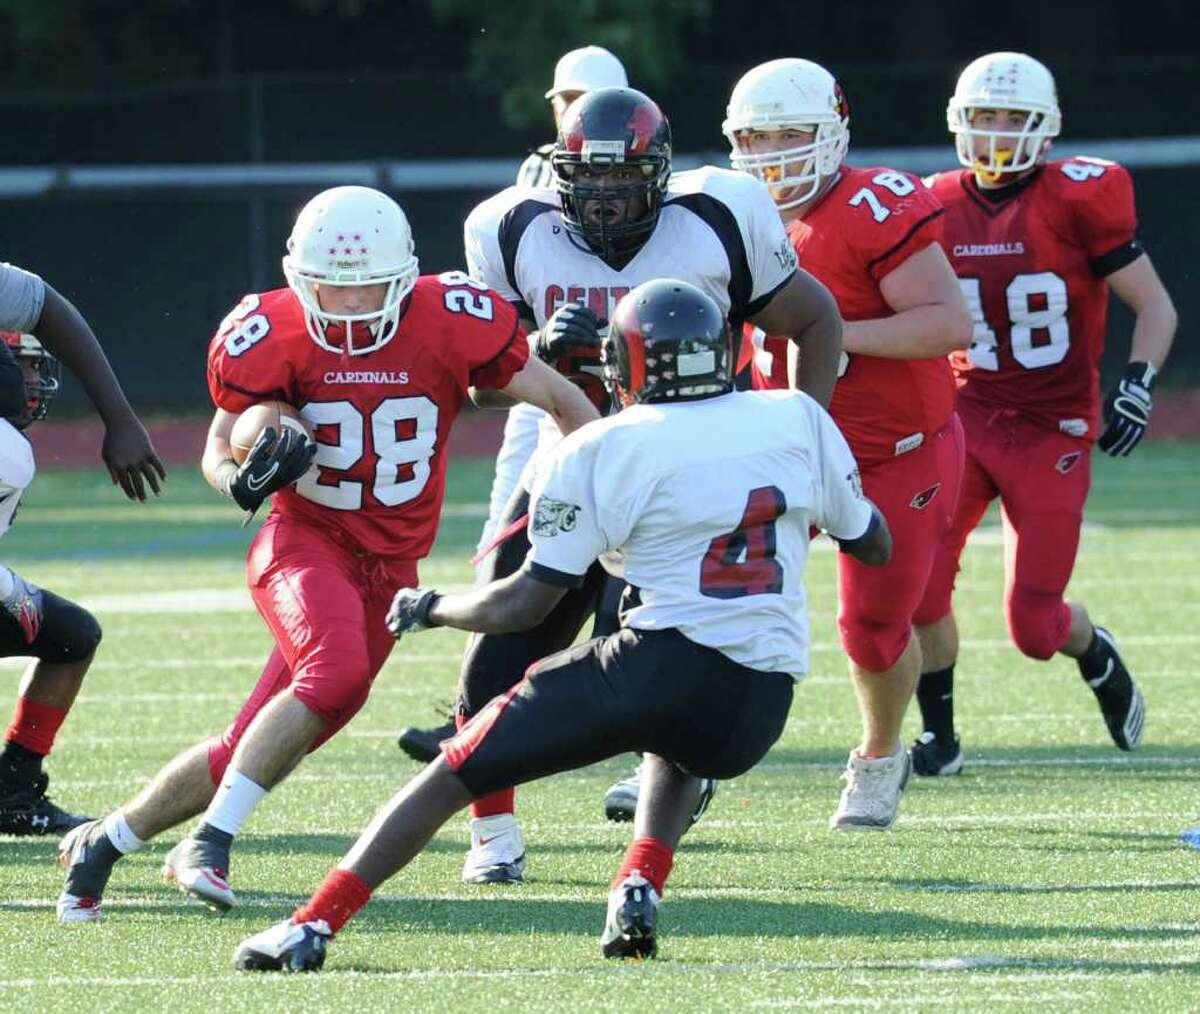 Mark Kelley of Greenwich High School # 28, left, jukes past Chad Lawrence, # 4 of Bridgeport Central, for a 50 yard touchdown run during the third quarter of game at Greenwich High School Saturday, Oct. 23, 2010.